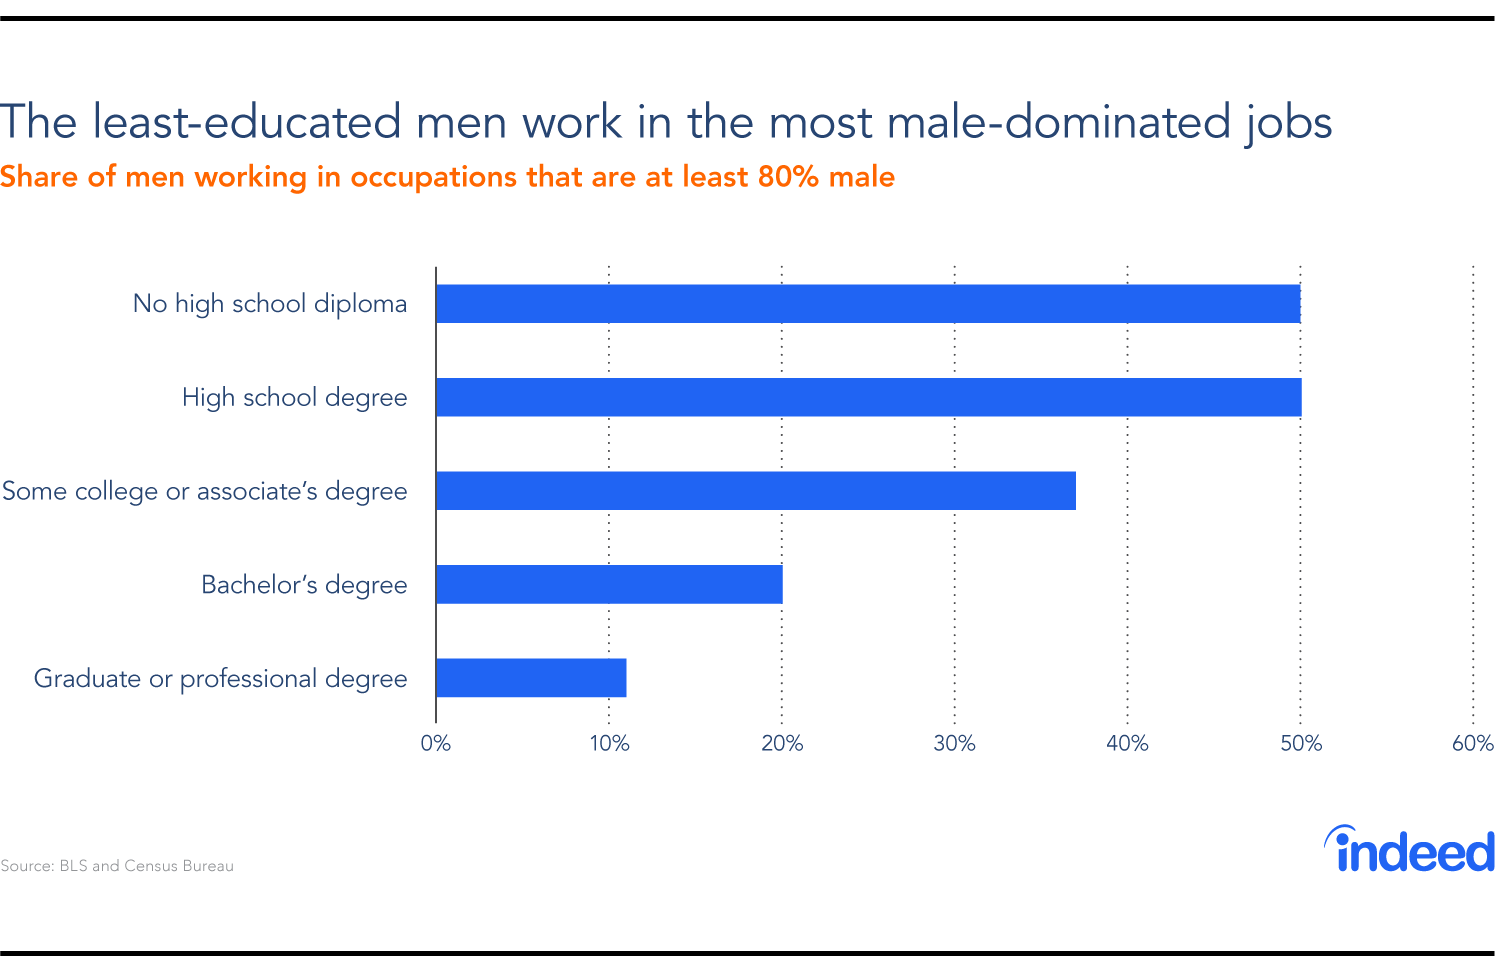 Male-dominated jobs are held by workers with less education